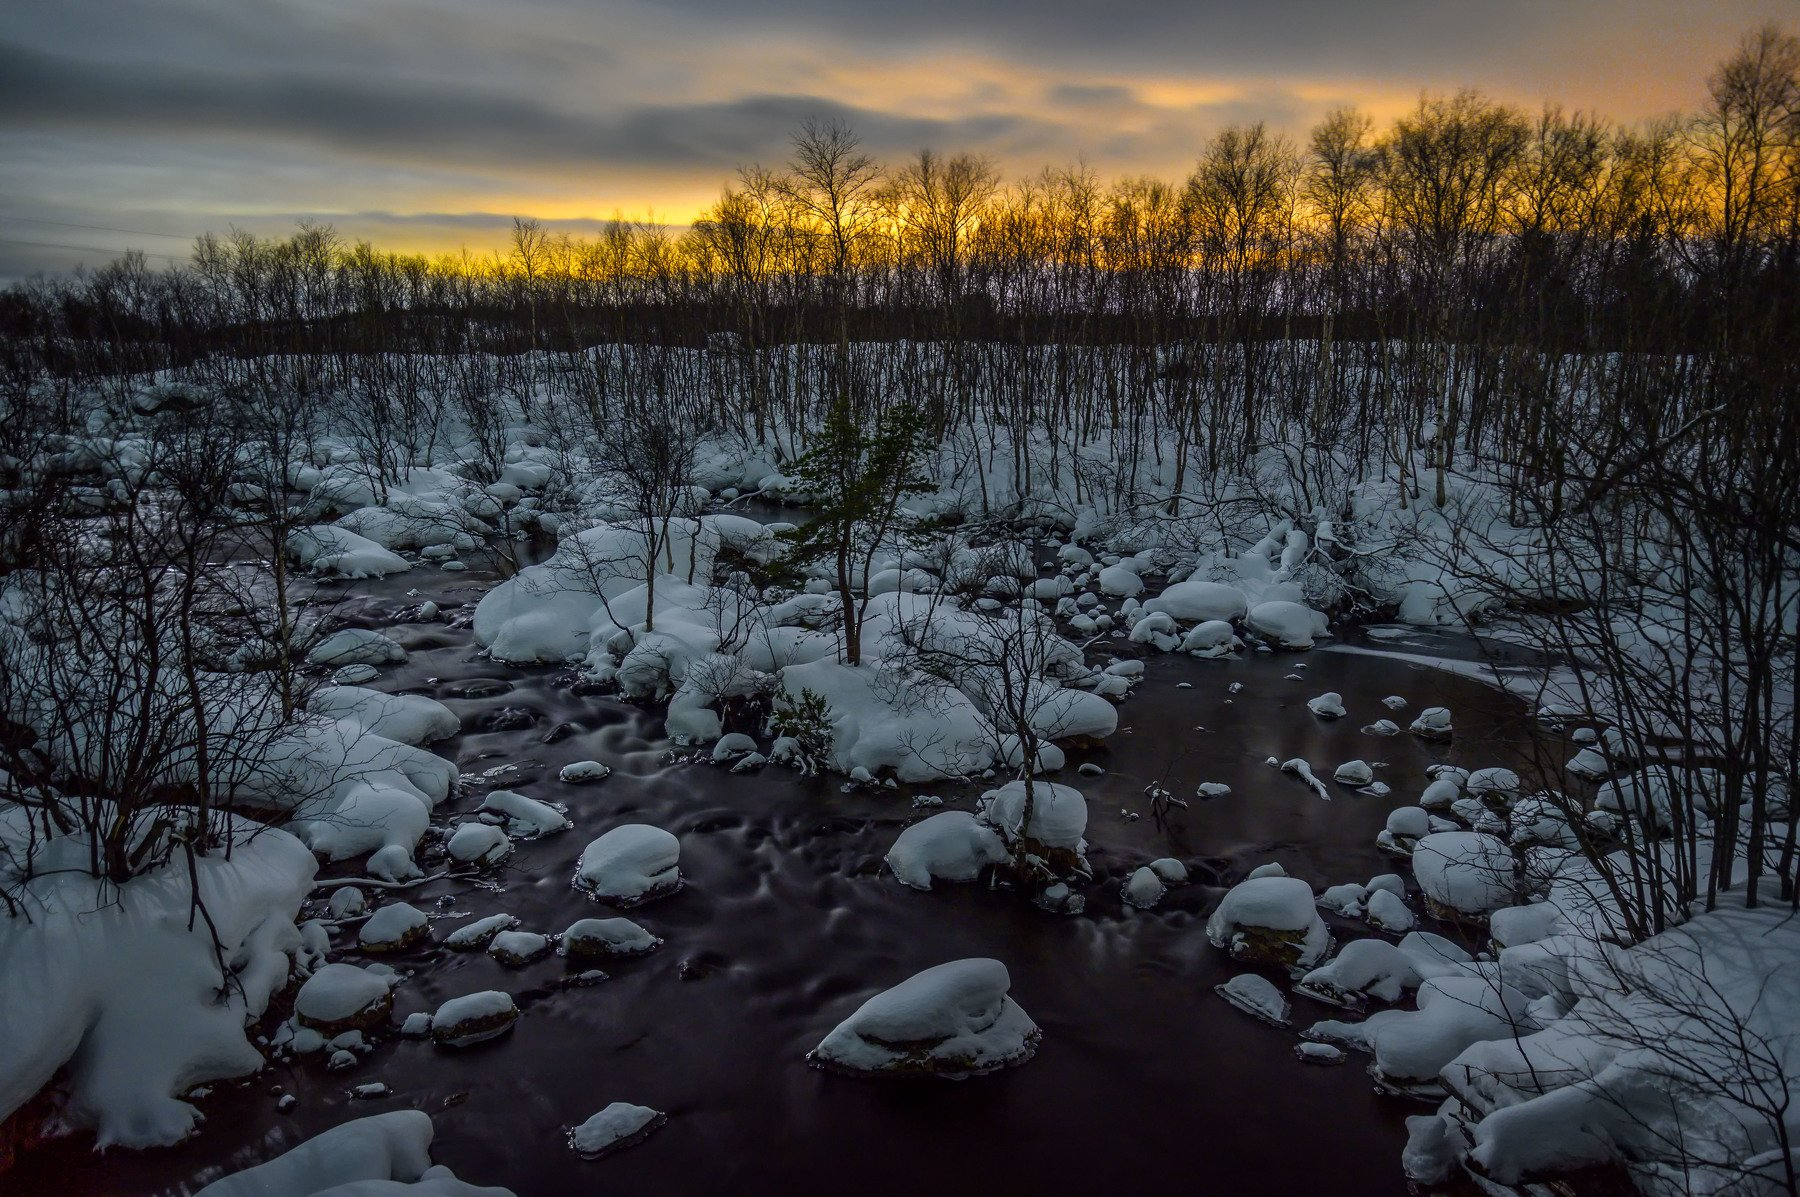 north night cold forest nature landscape kola peninsula forest winter, Бугримов Егор